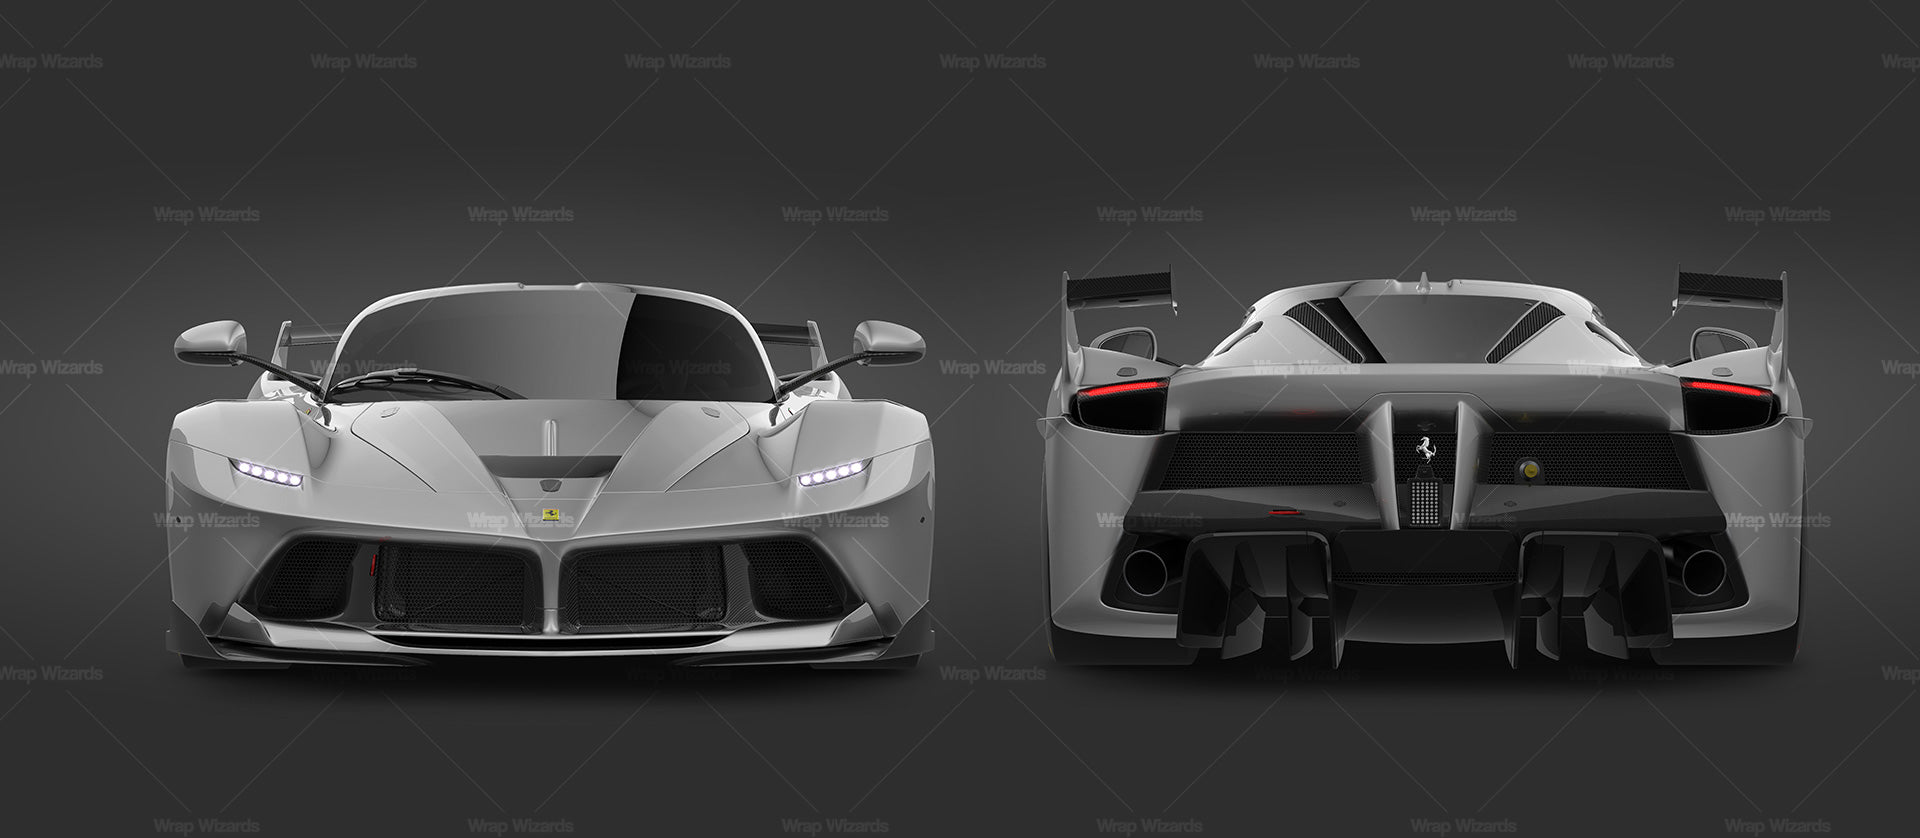 Ferrari FXX K glossy finish - all sides Car Mockup Template.psd